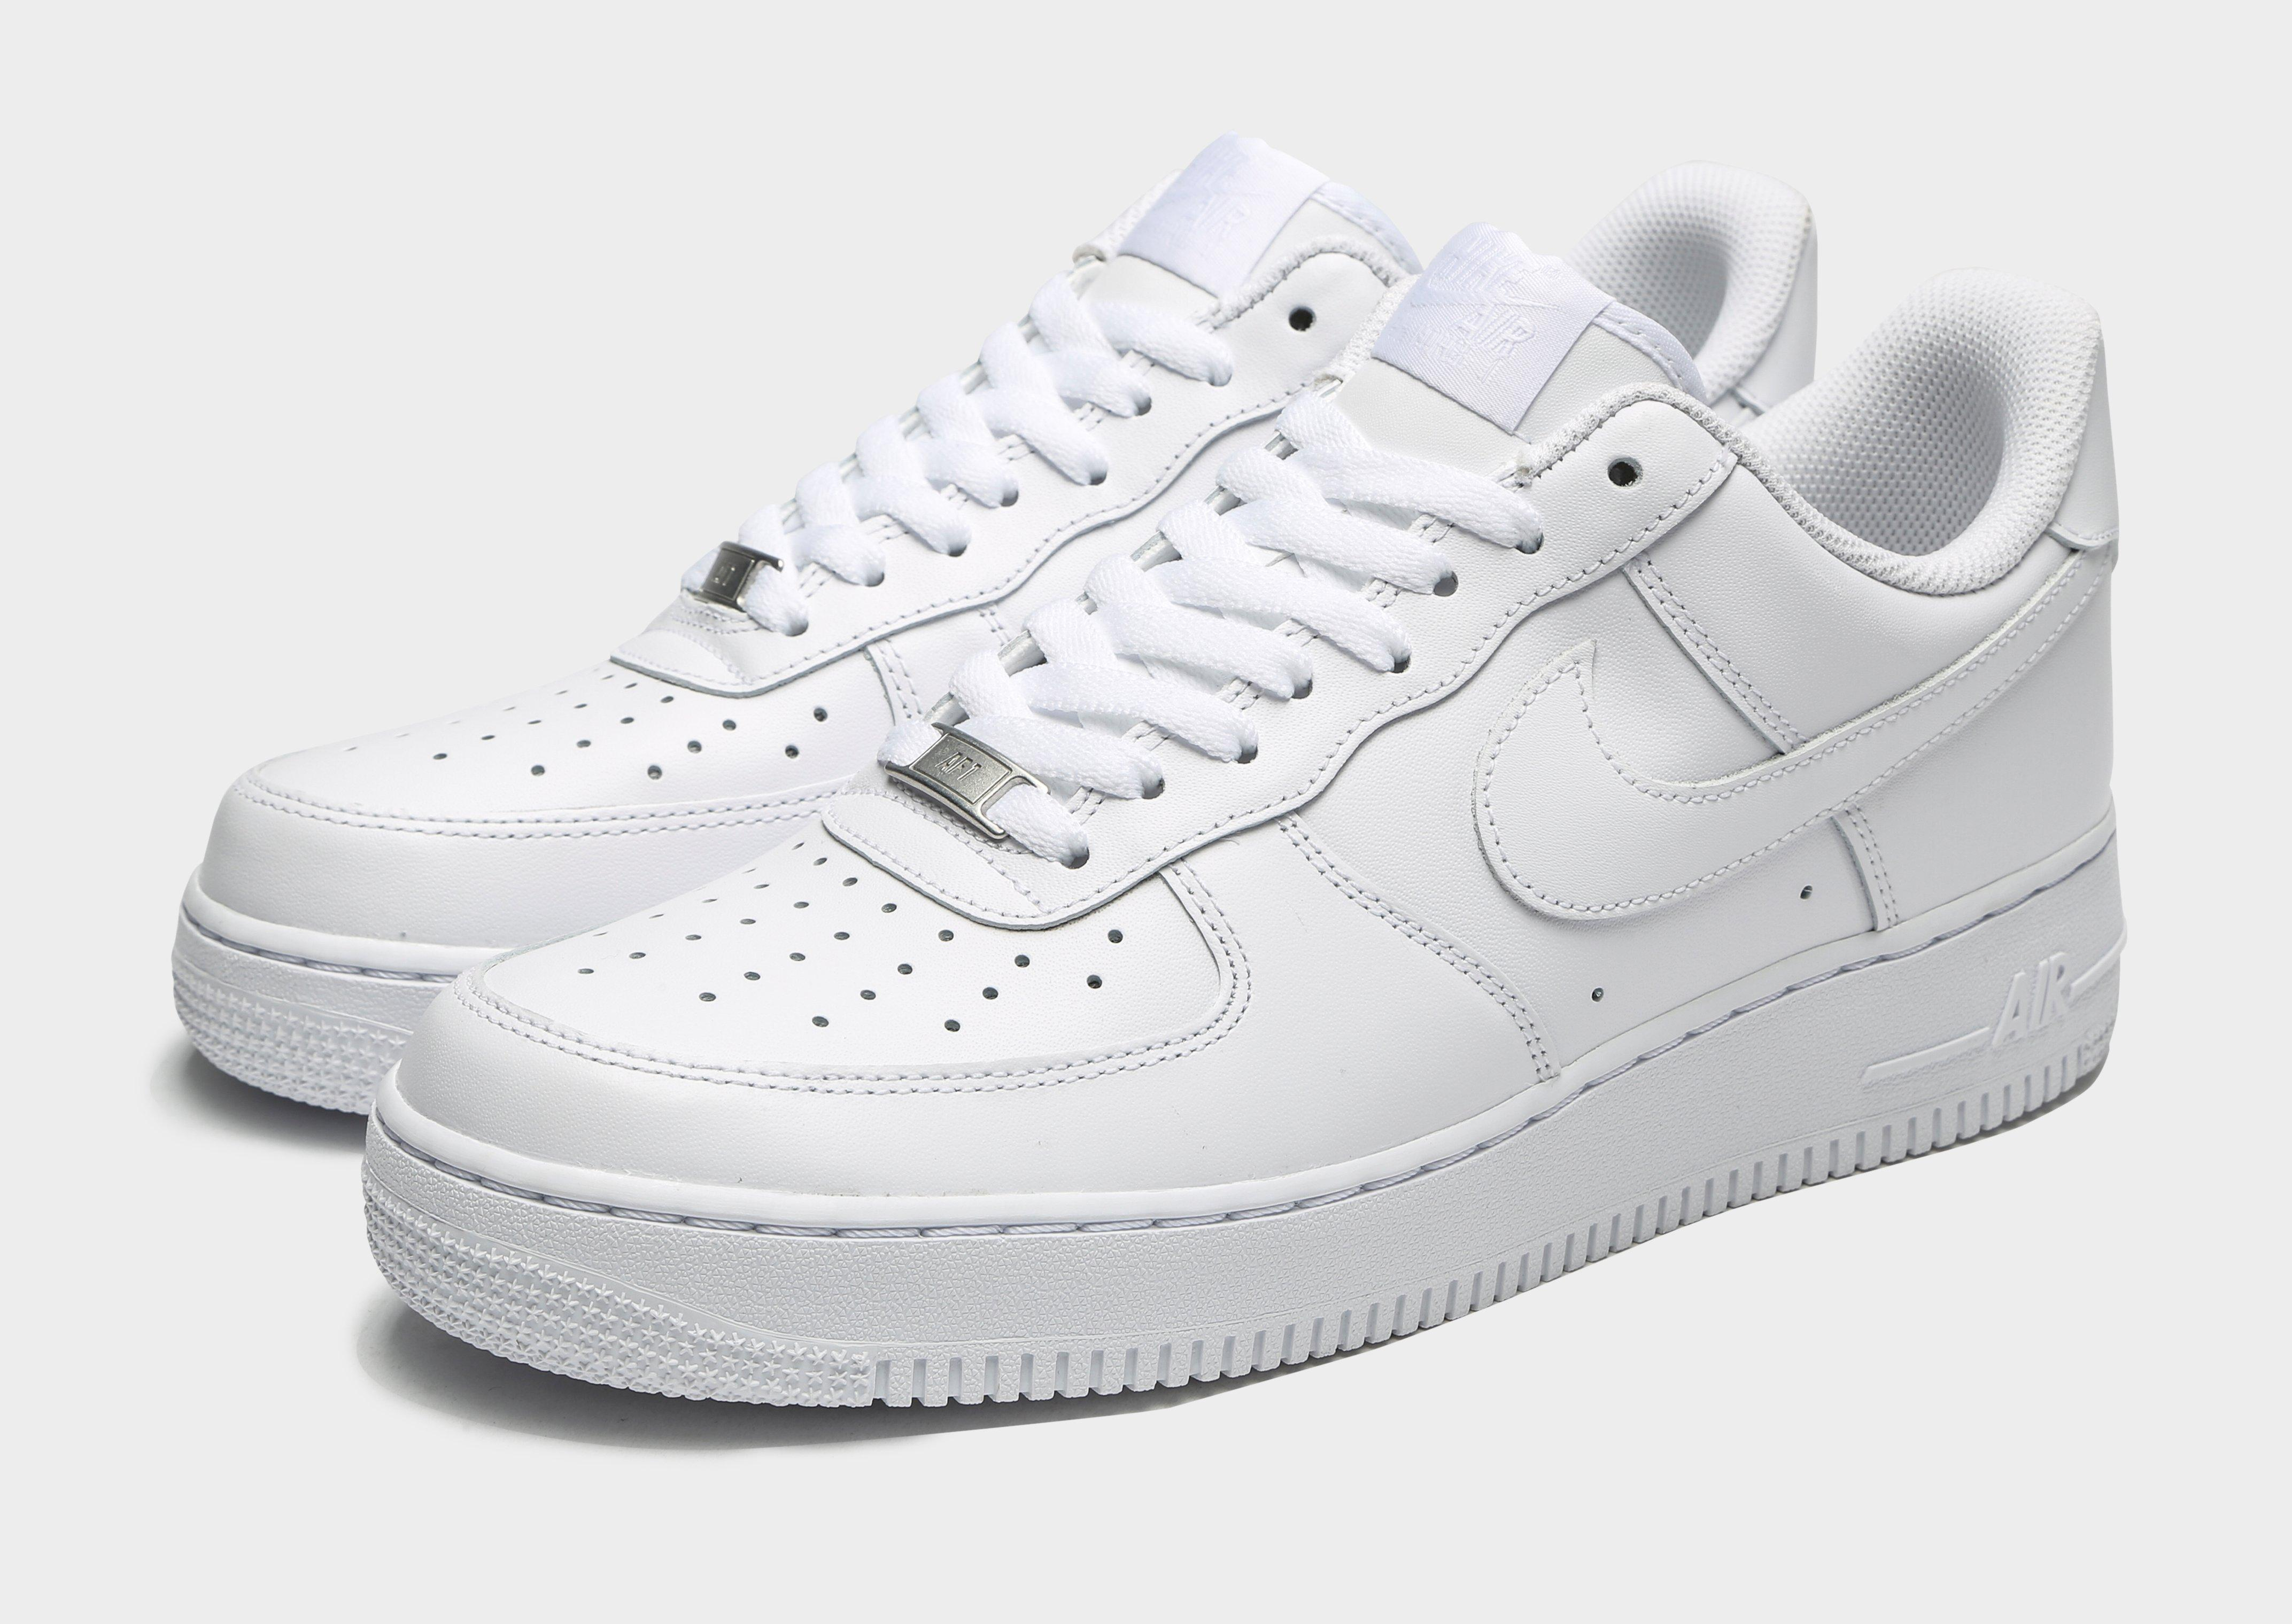 Super Chaud OD51133 Air Force 1 Low Homme Bleu et Noir basket nike air  force homme air force one ... nike air force one mid noir,nike air force 1  low noir ... b716cb2c3f06